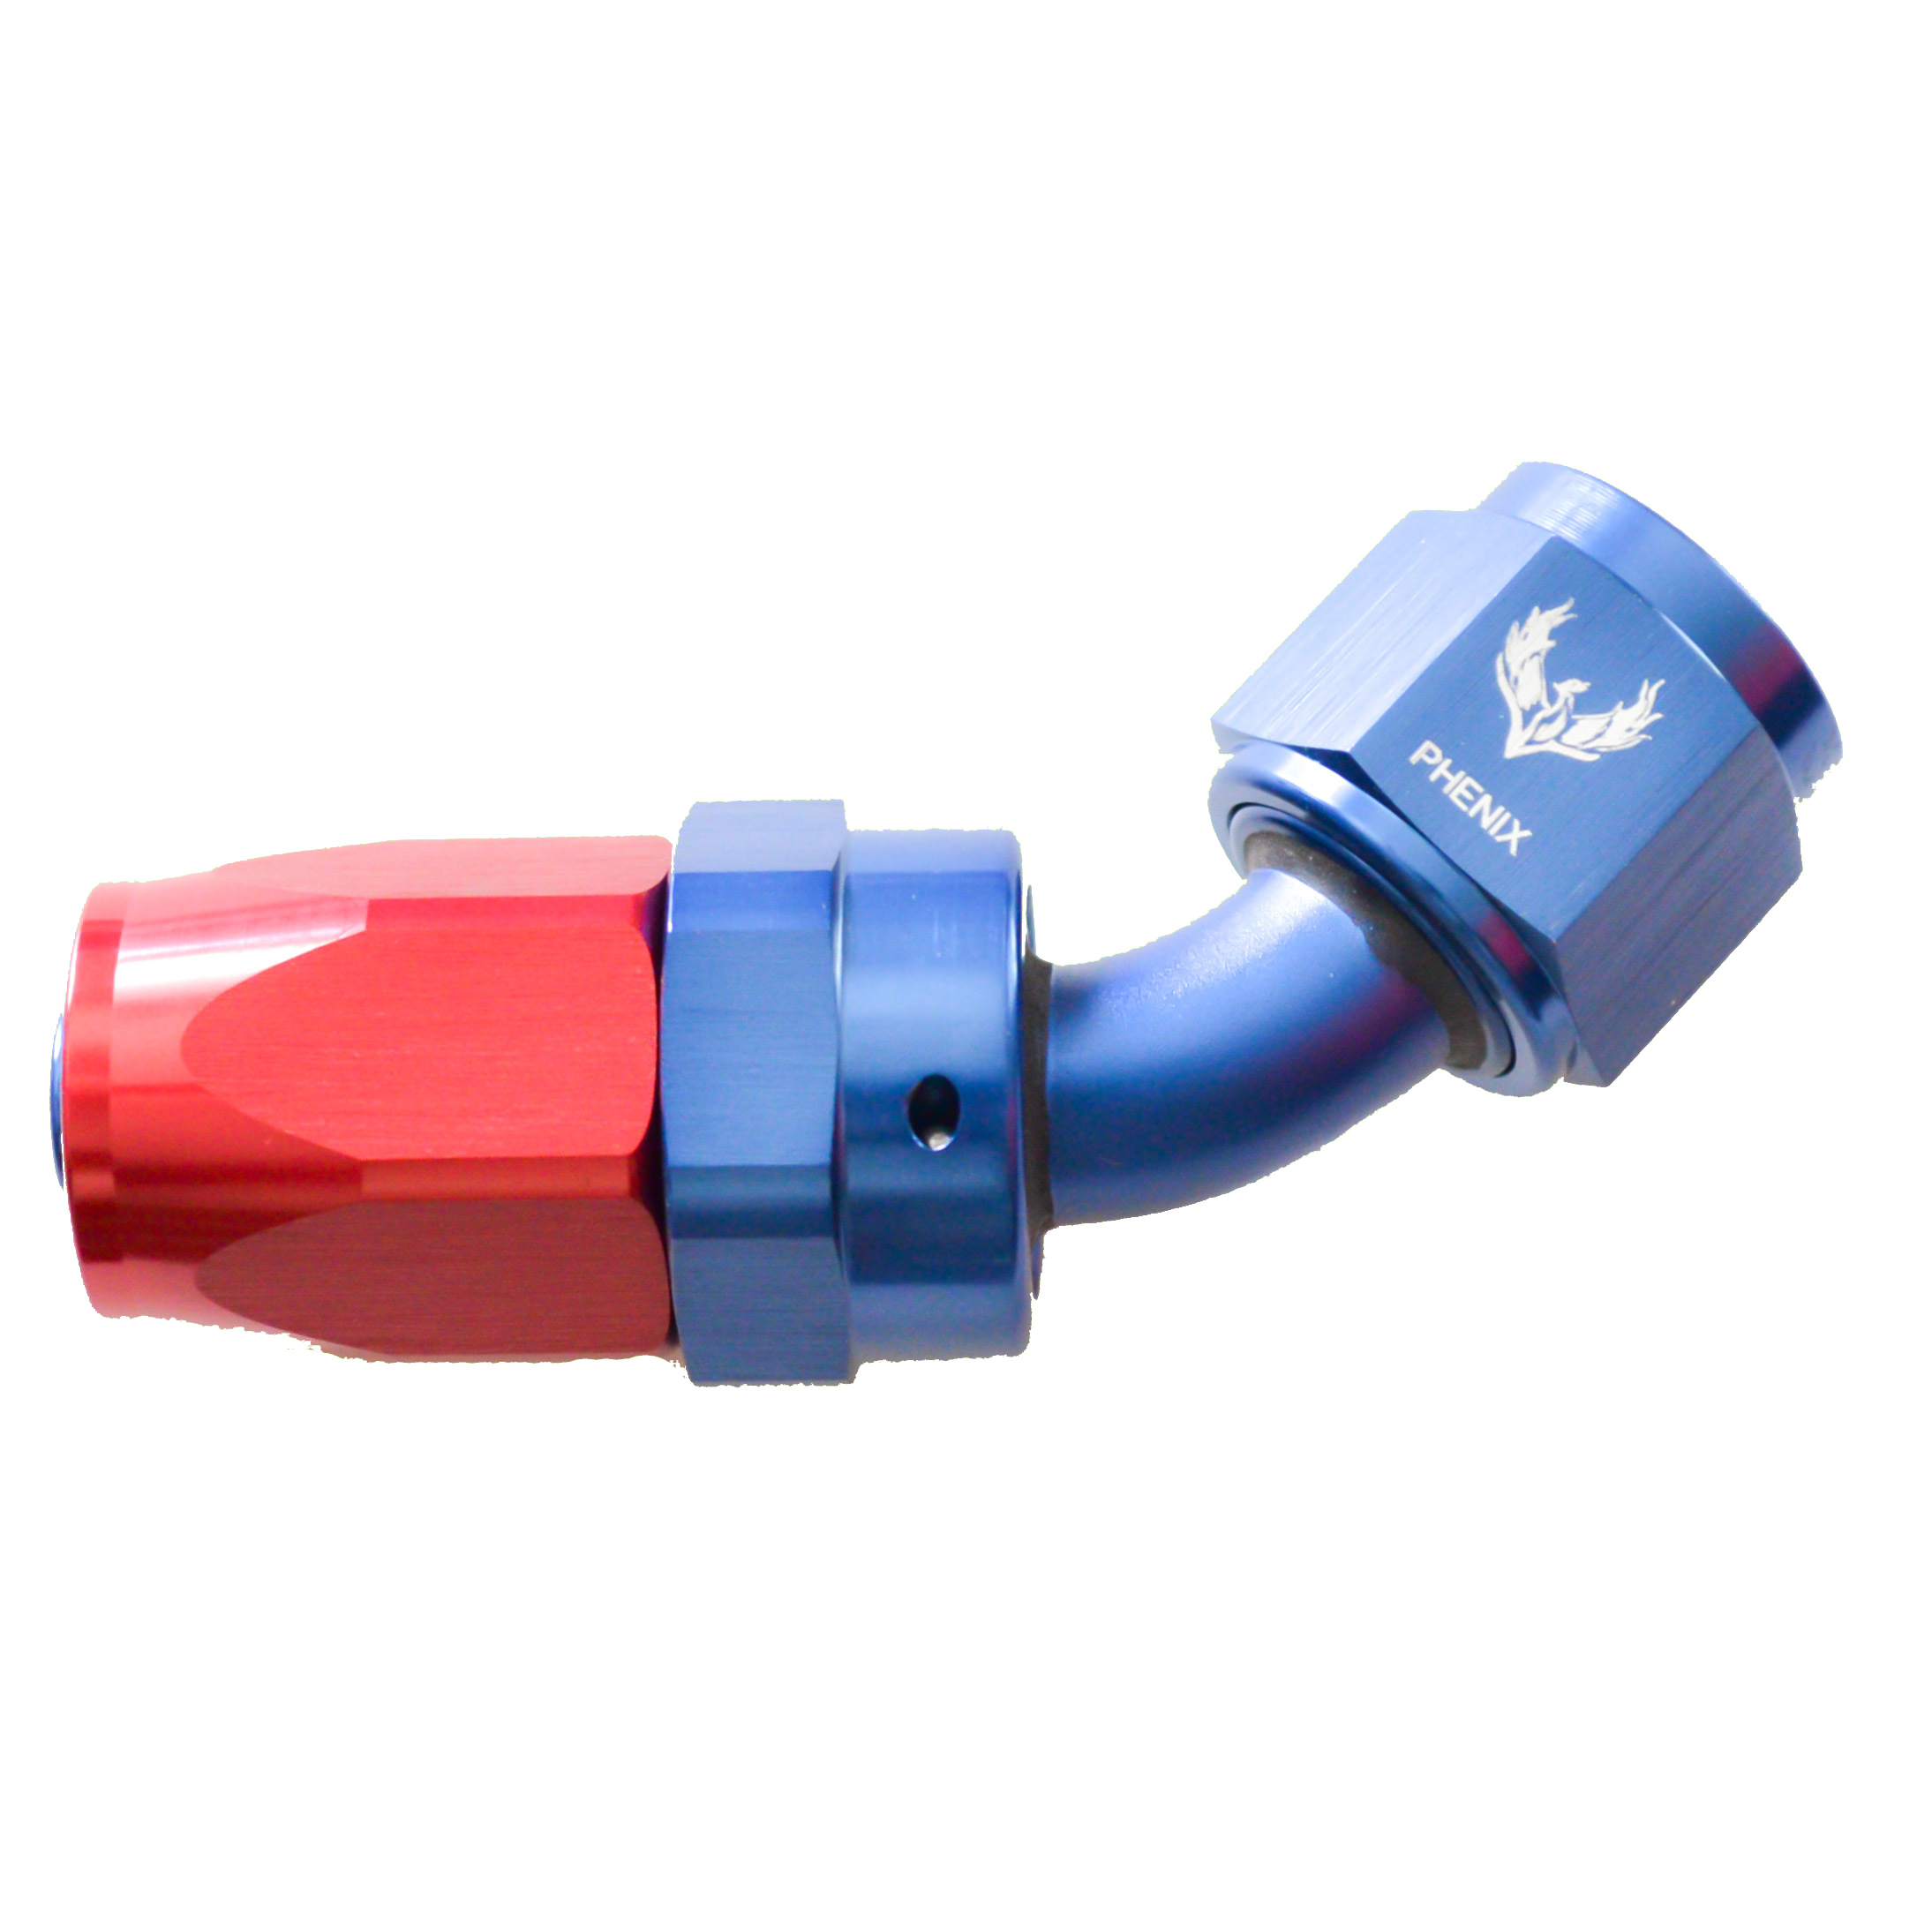 -4 45 DEGREE SWIVEL HOSE END BLU